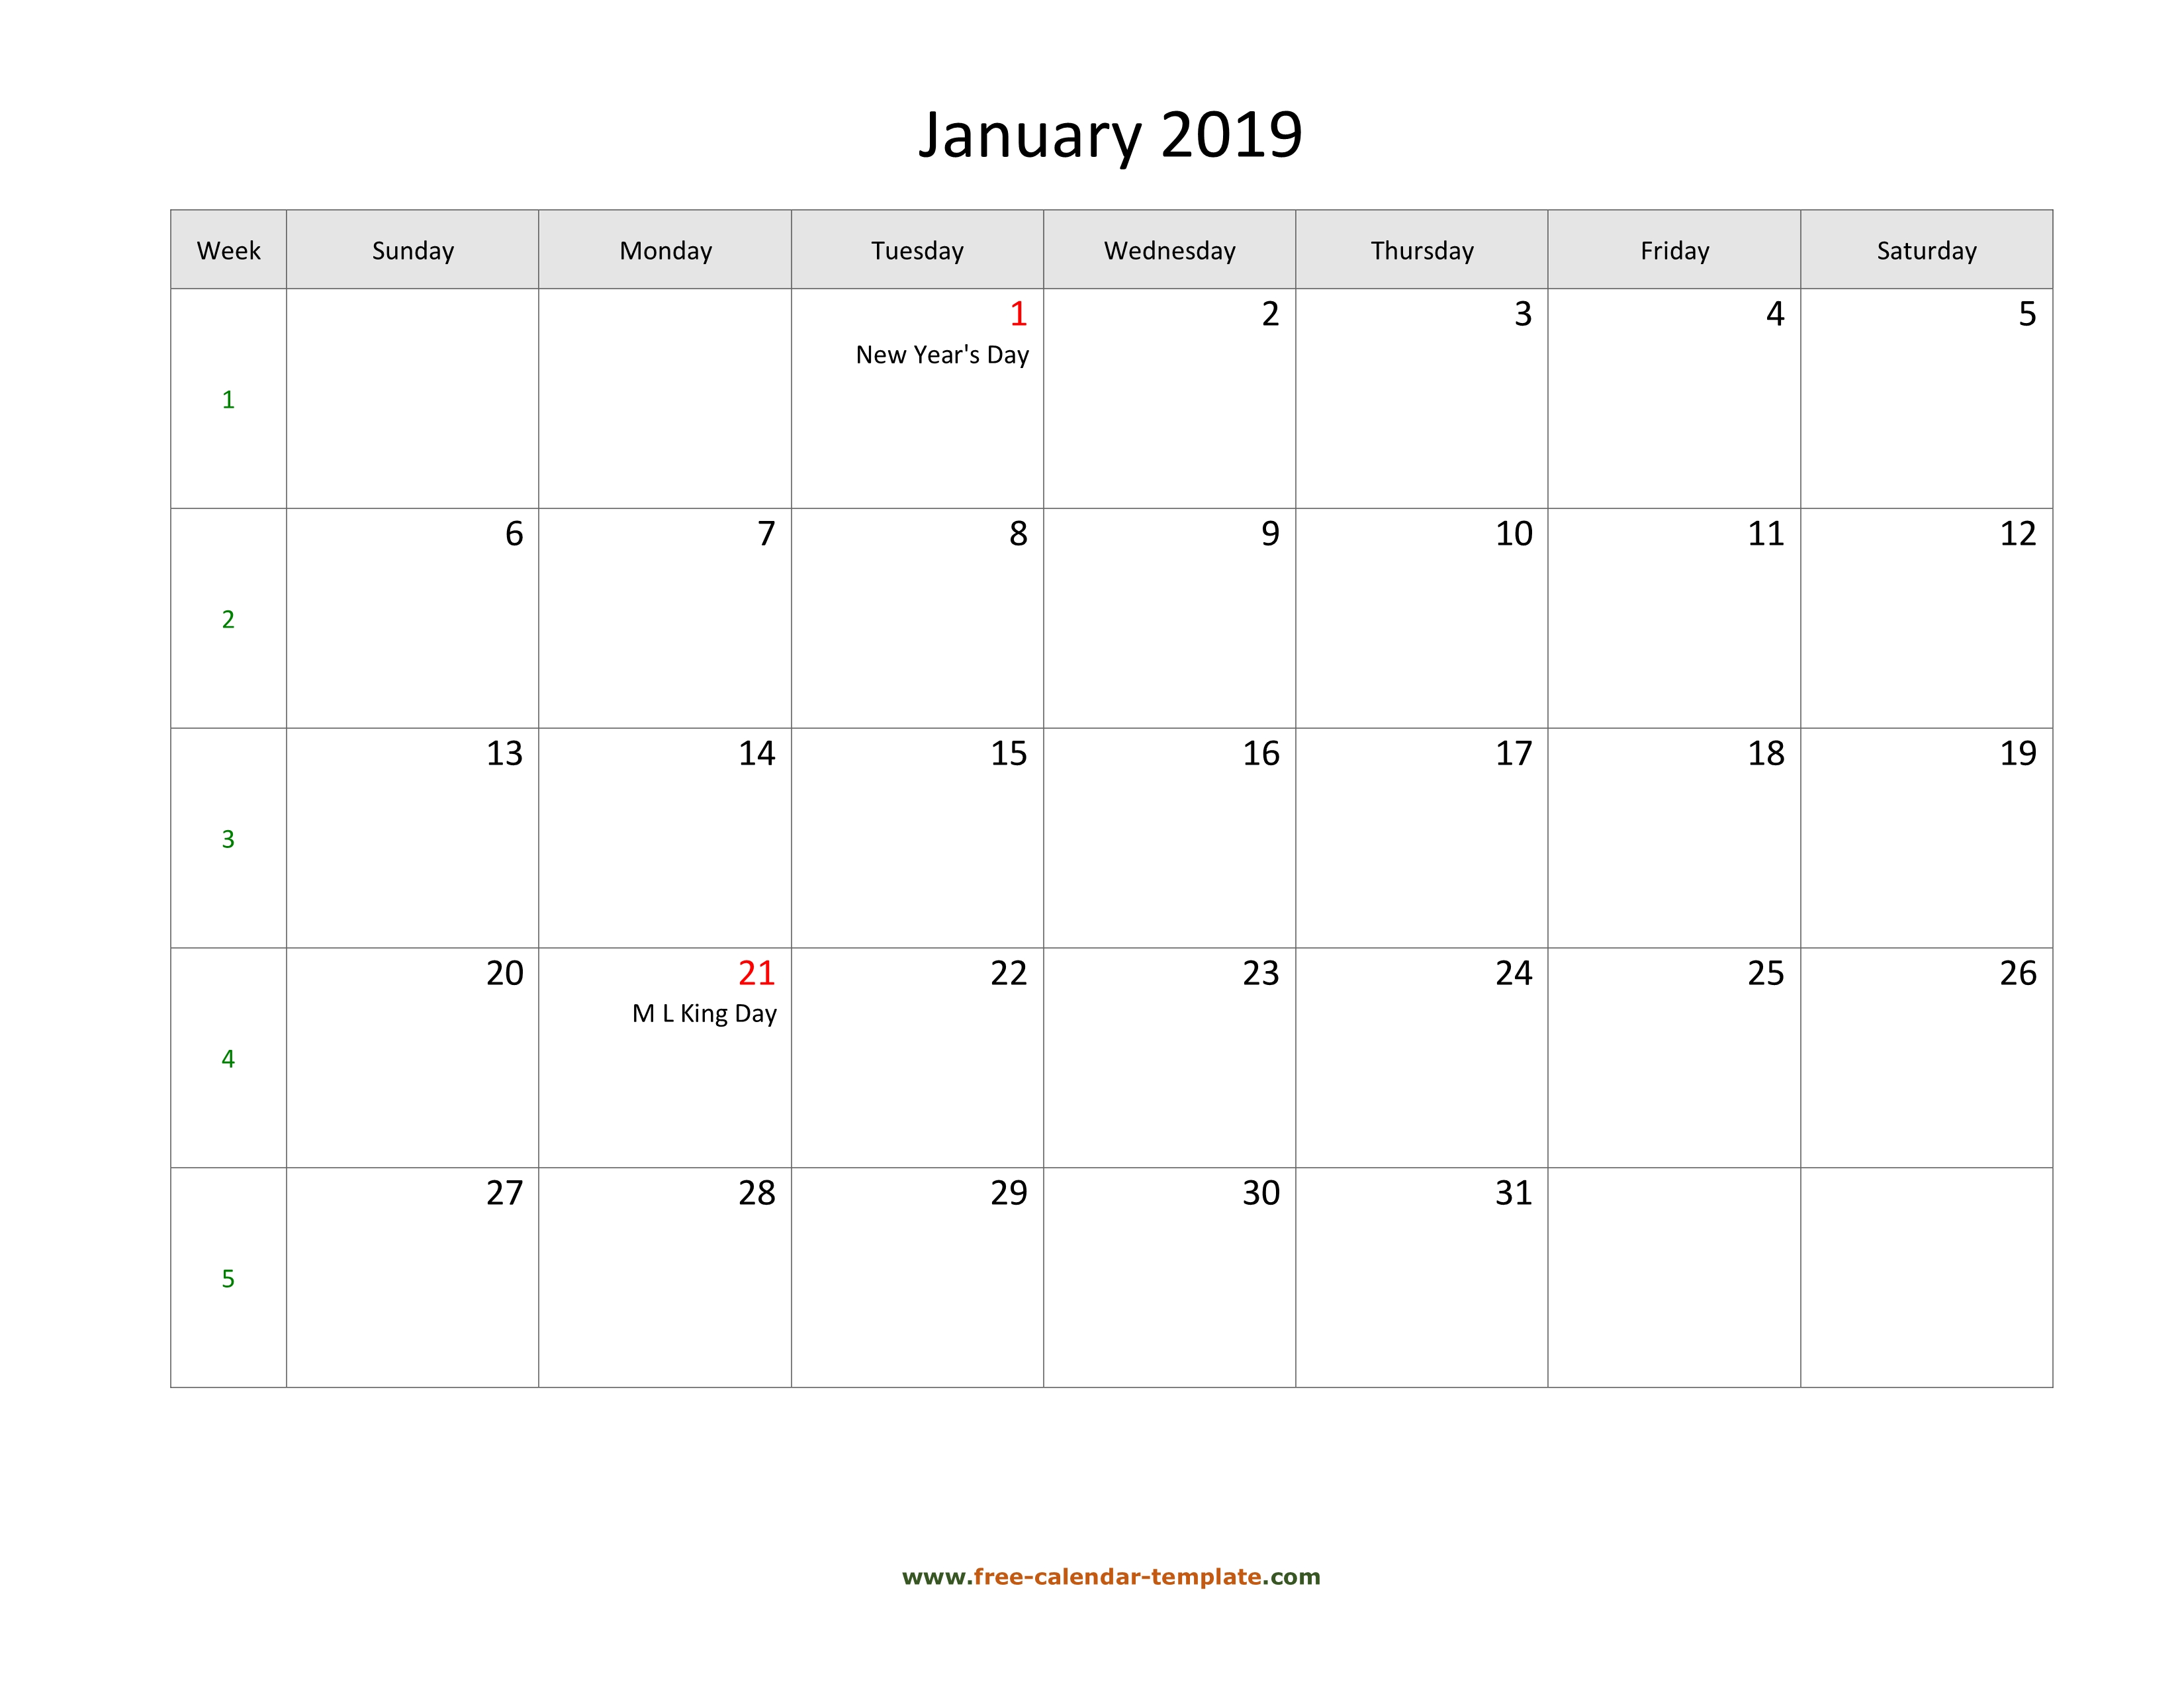 photo relating to Calendar With Holidays Printable called Totally free 2019 Calendar Blank January Template (horizontal